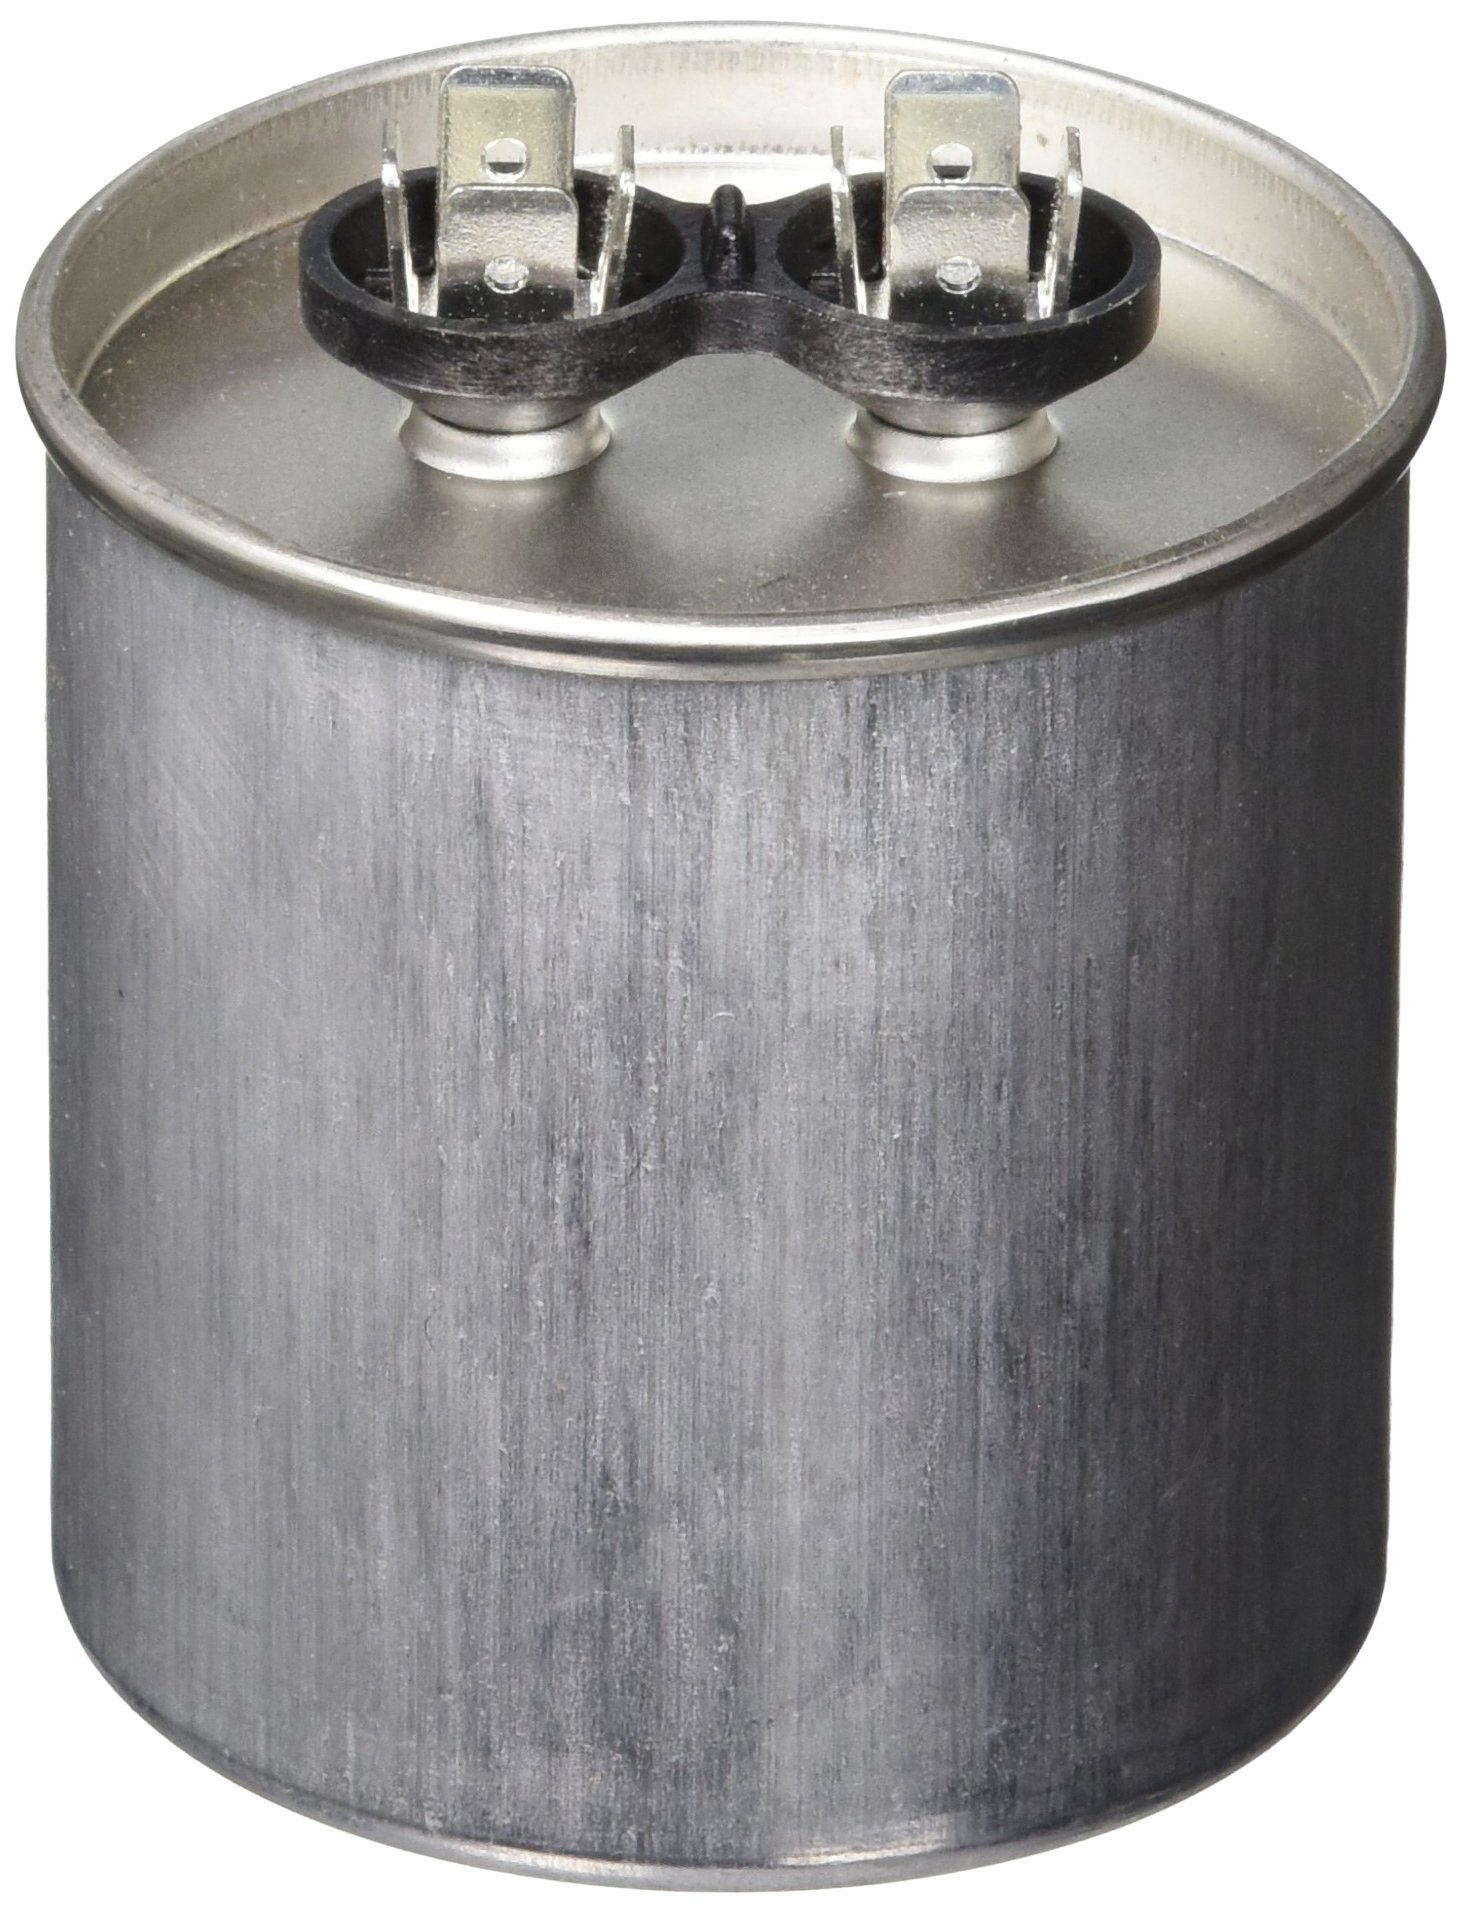 Protech 662766275636 70/370 Single Round Capacitor by Protech